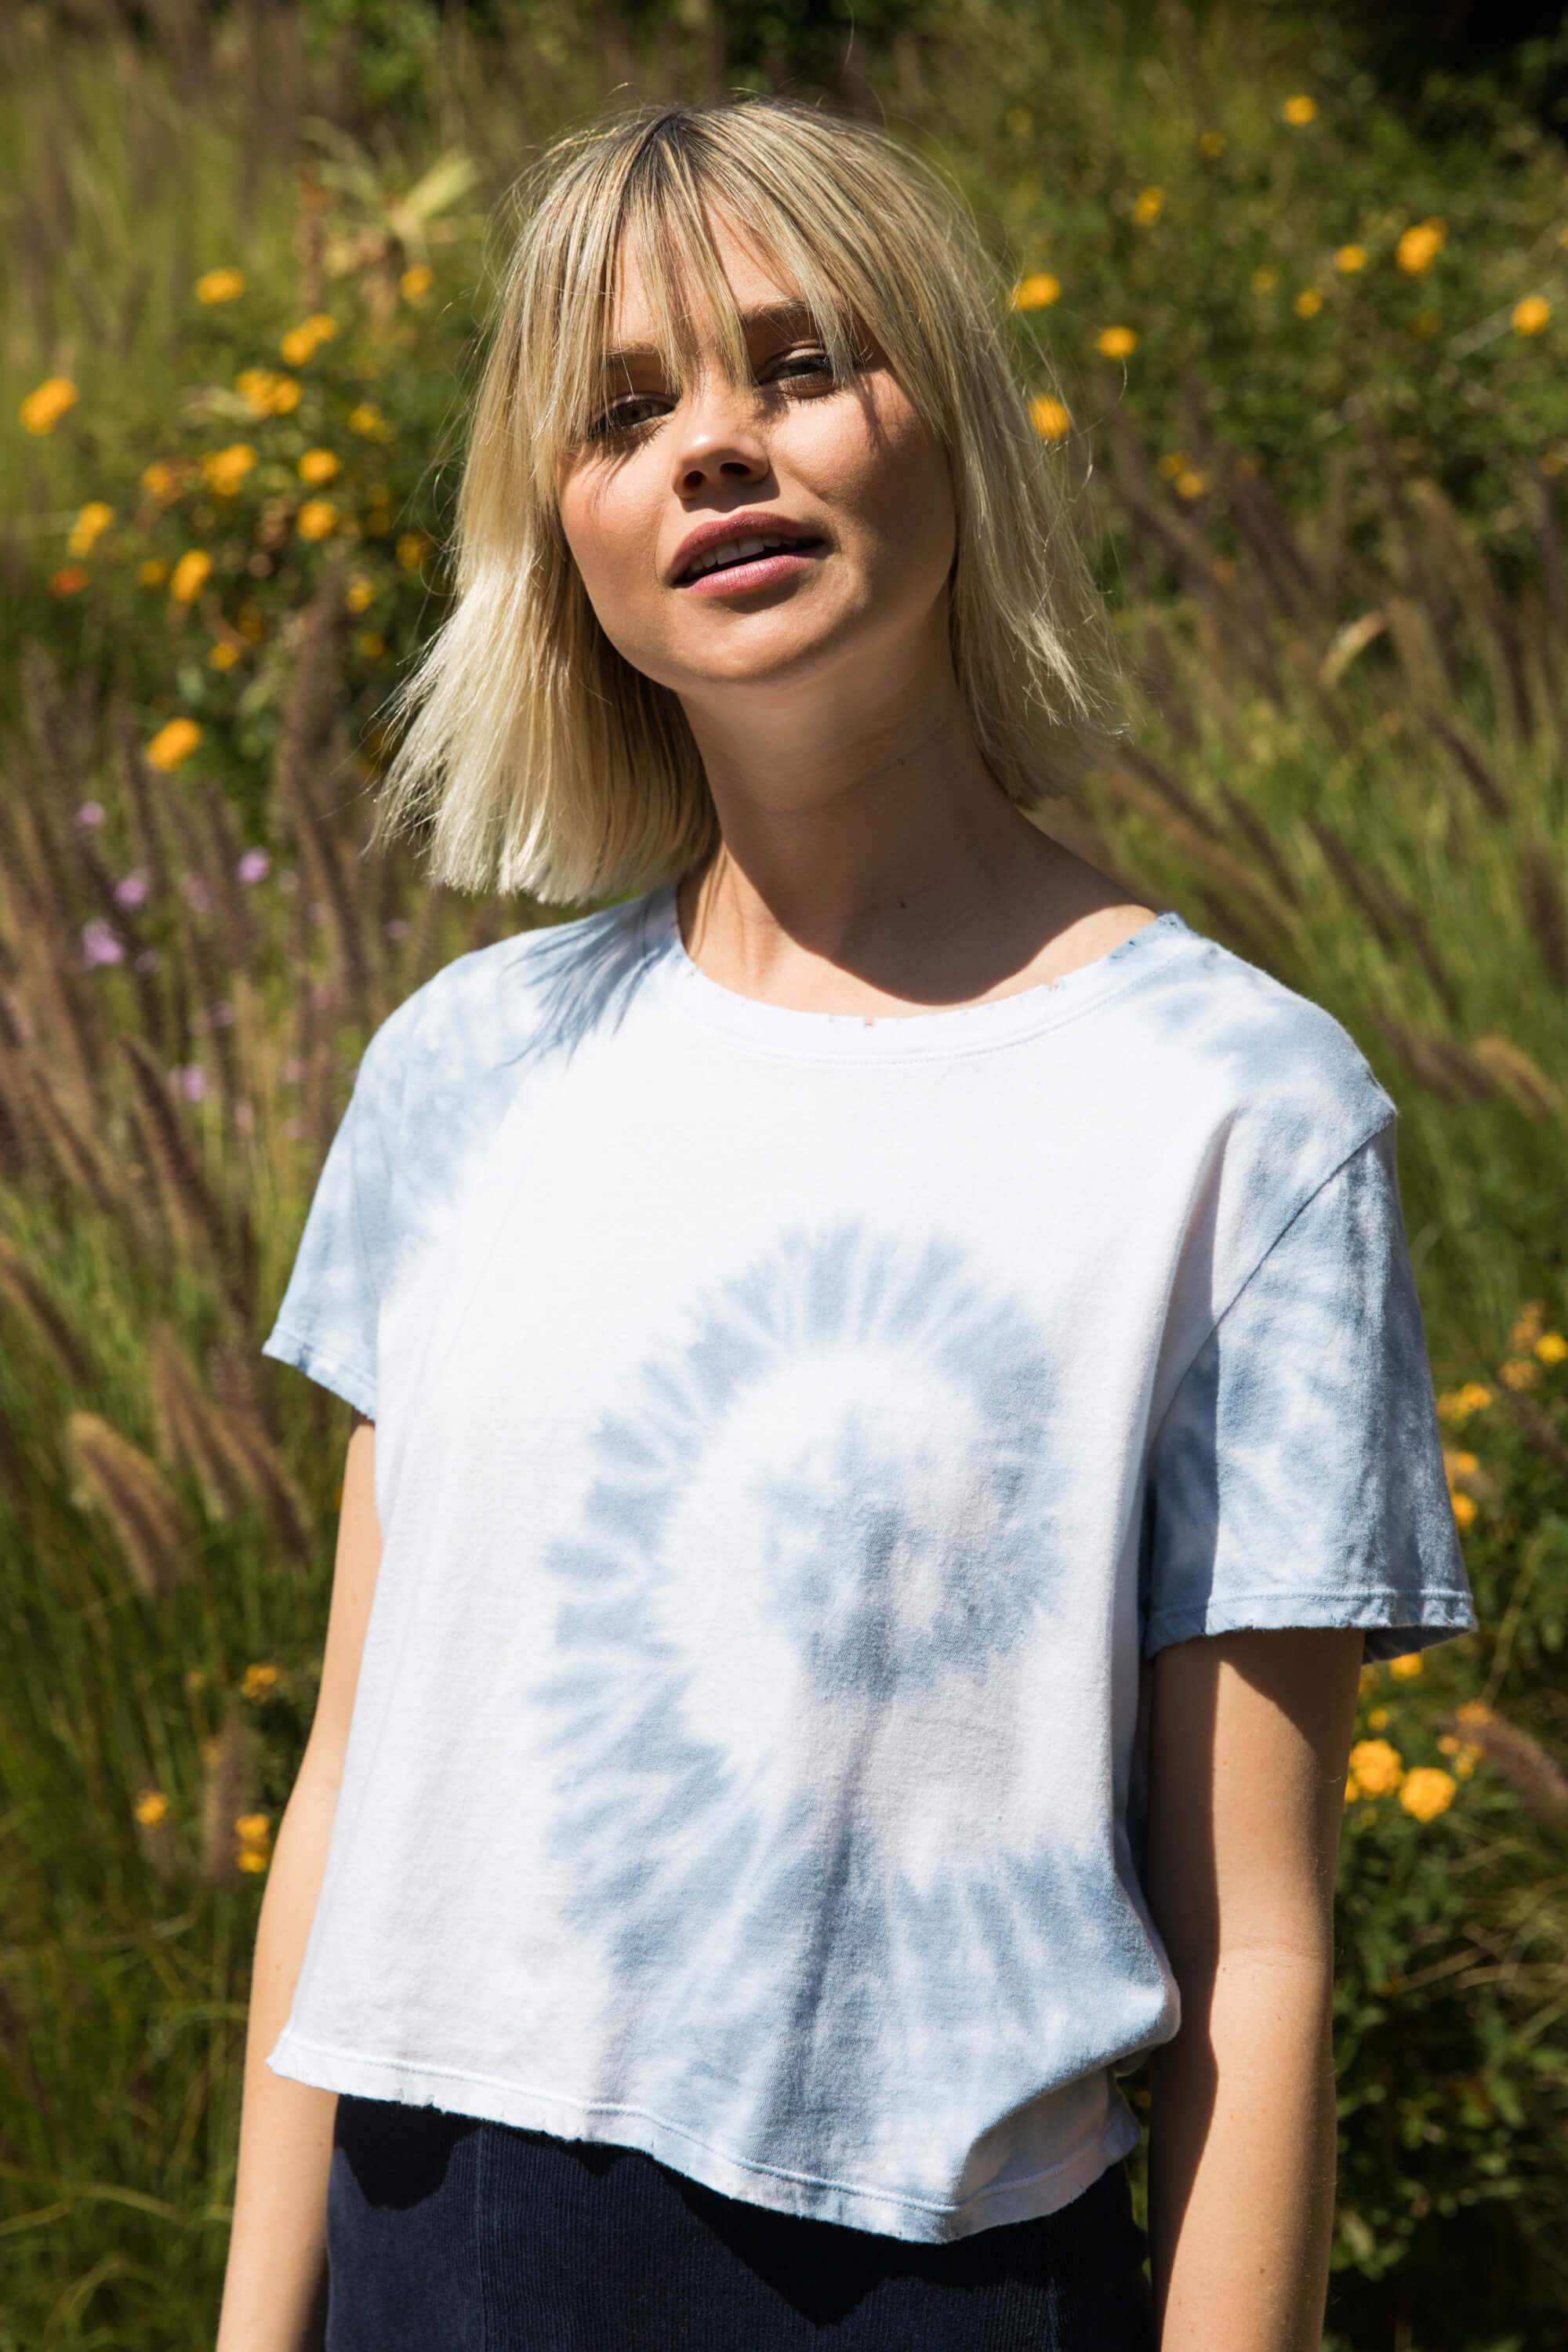 CLOUD TIE DYE DYLAN TEE by sub_urban rio, available on suburbanriot.com for $24 Alessandra Ambrosio Top Exact Product